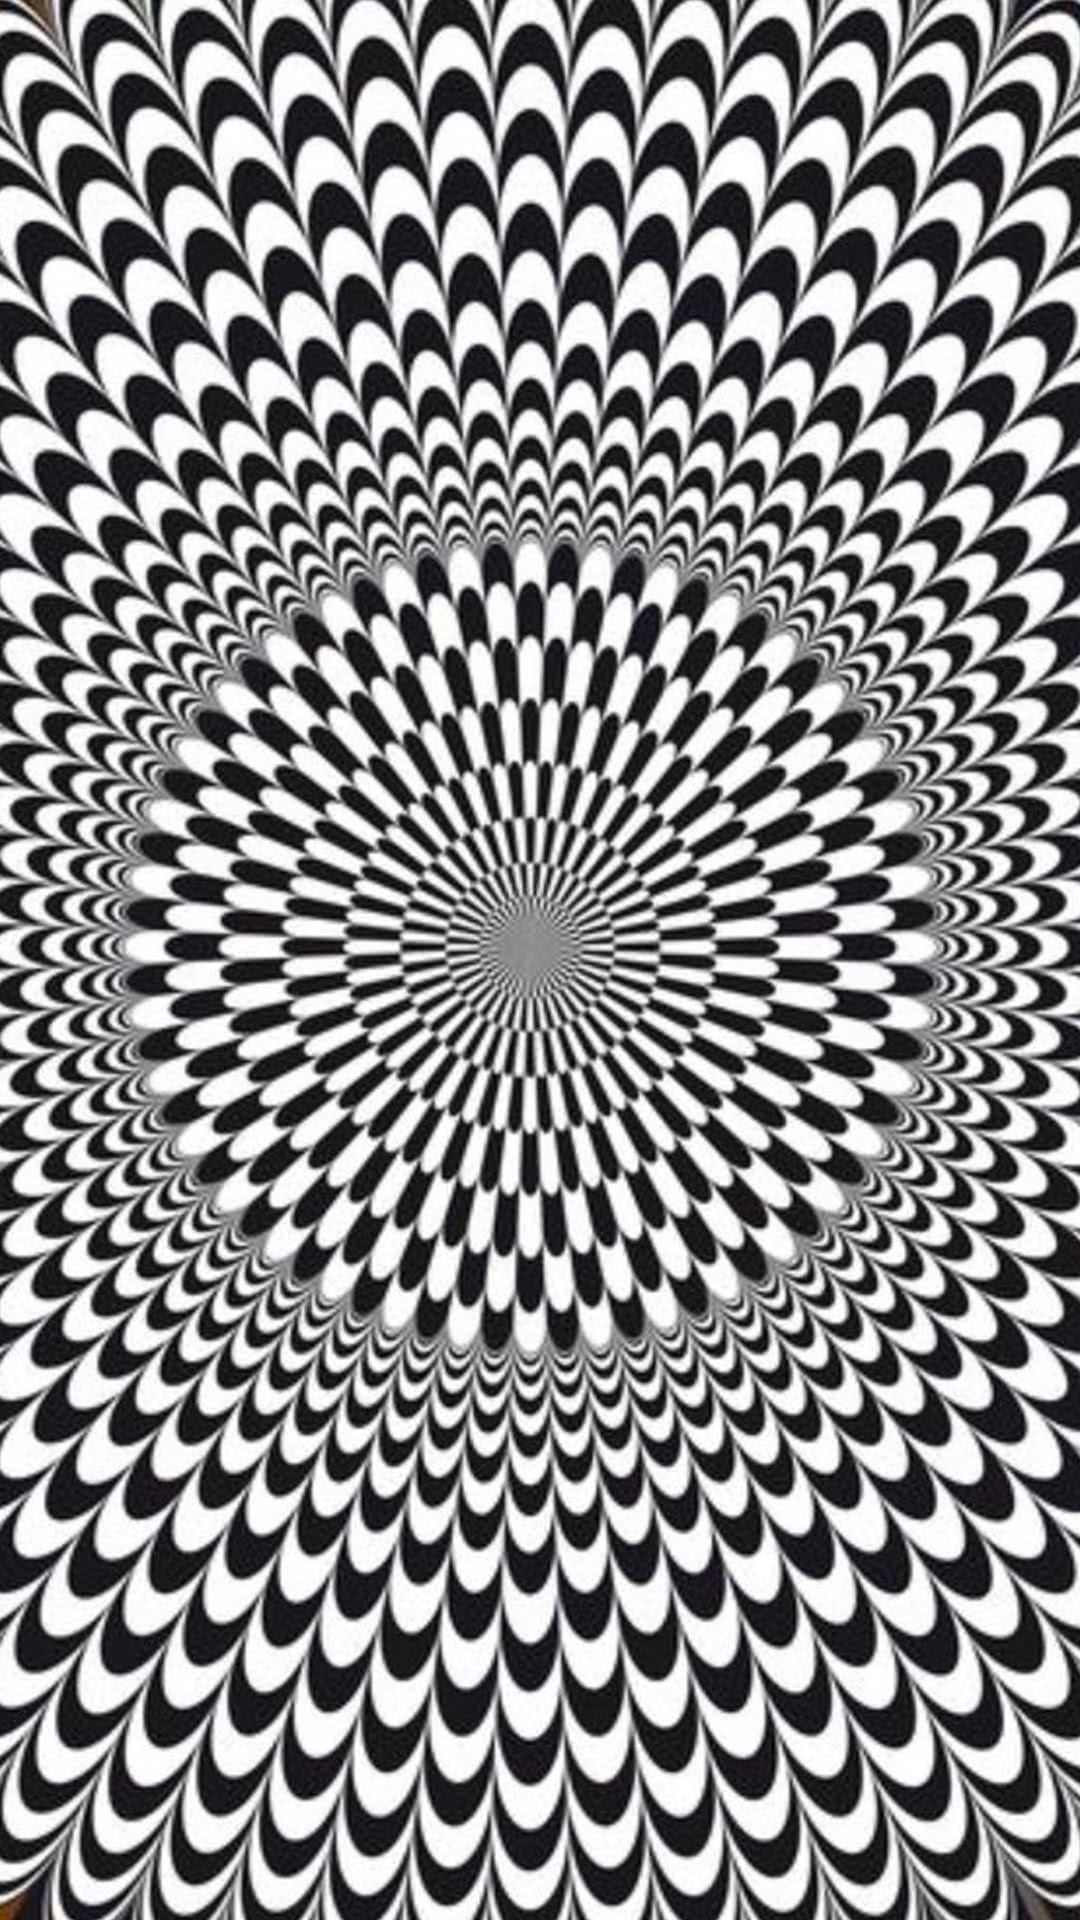 Eye Illusion Wallpapers Top Free Eye Illusion Backgrounds Wallpaperaccess